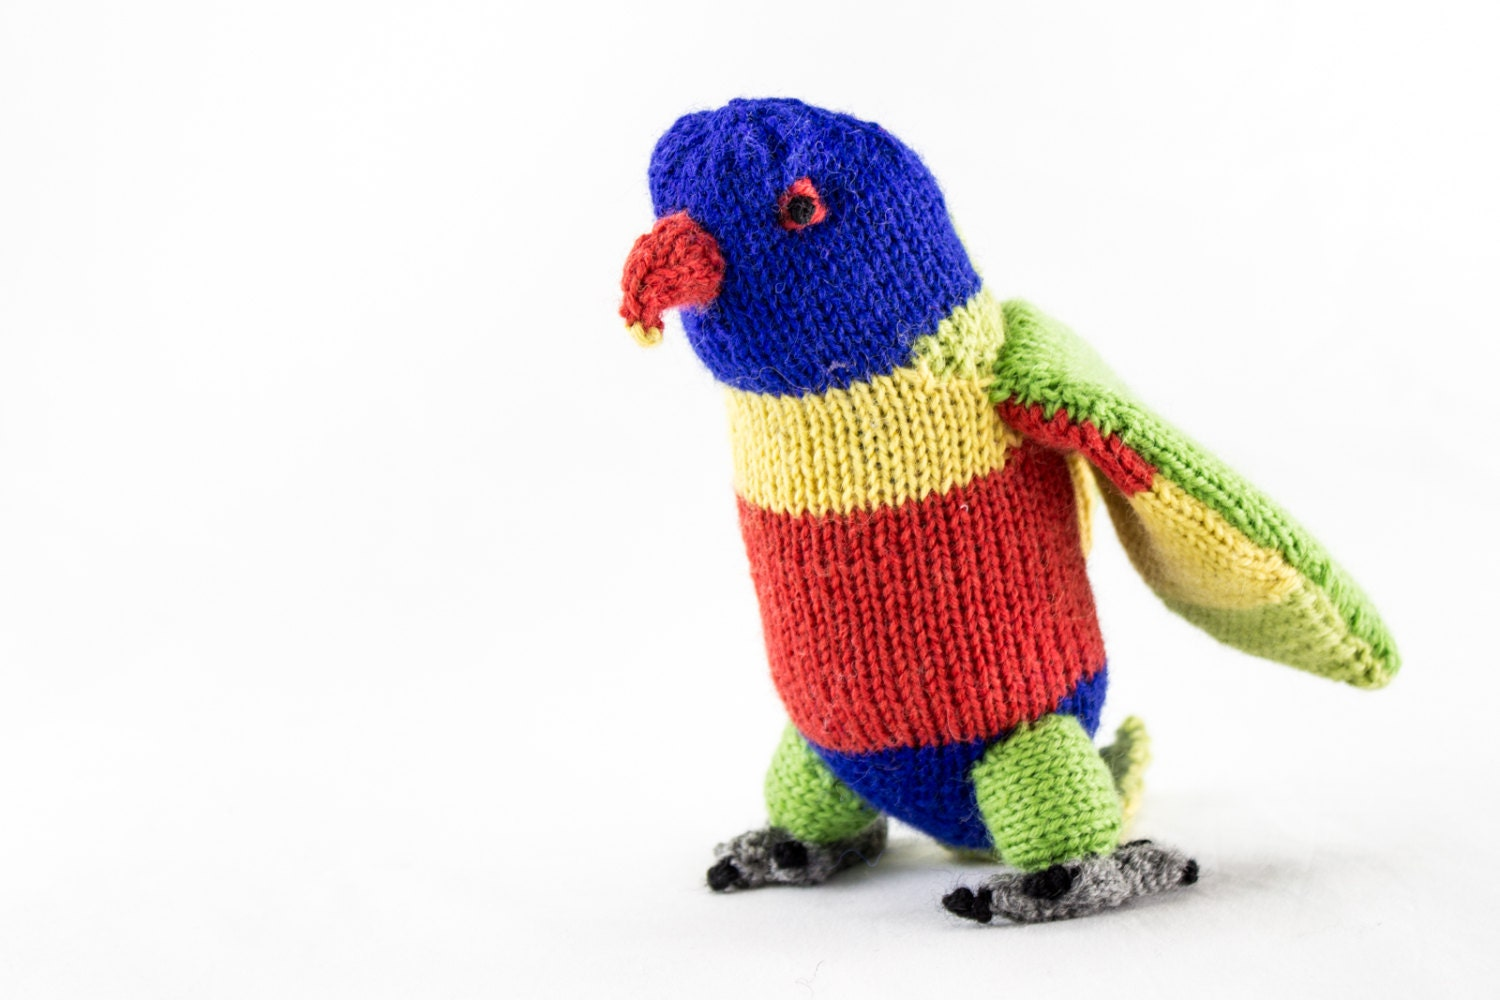 KNITTING PATTERN, PDF, Soft Toy Knitting Pattern, Rainbow Lorikeet ...